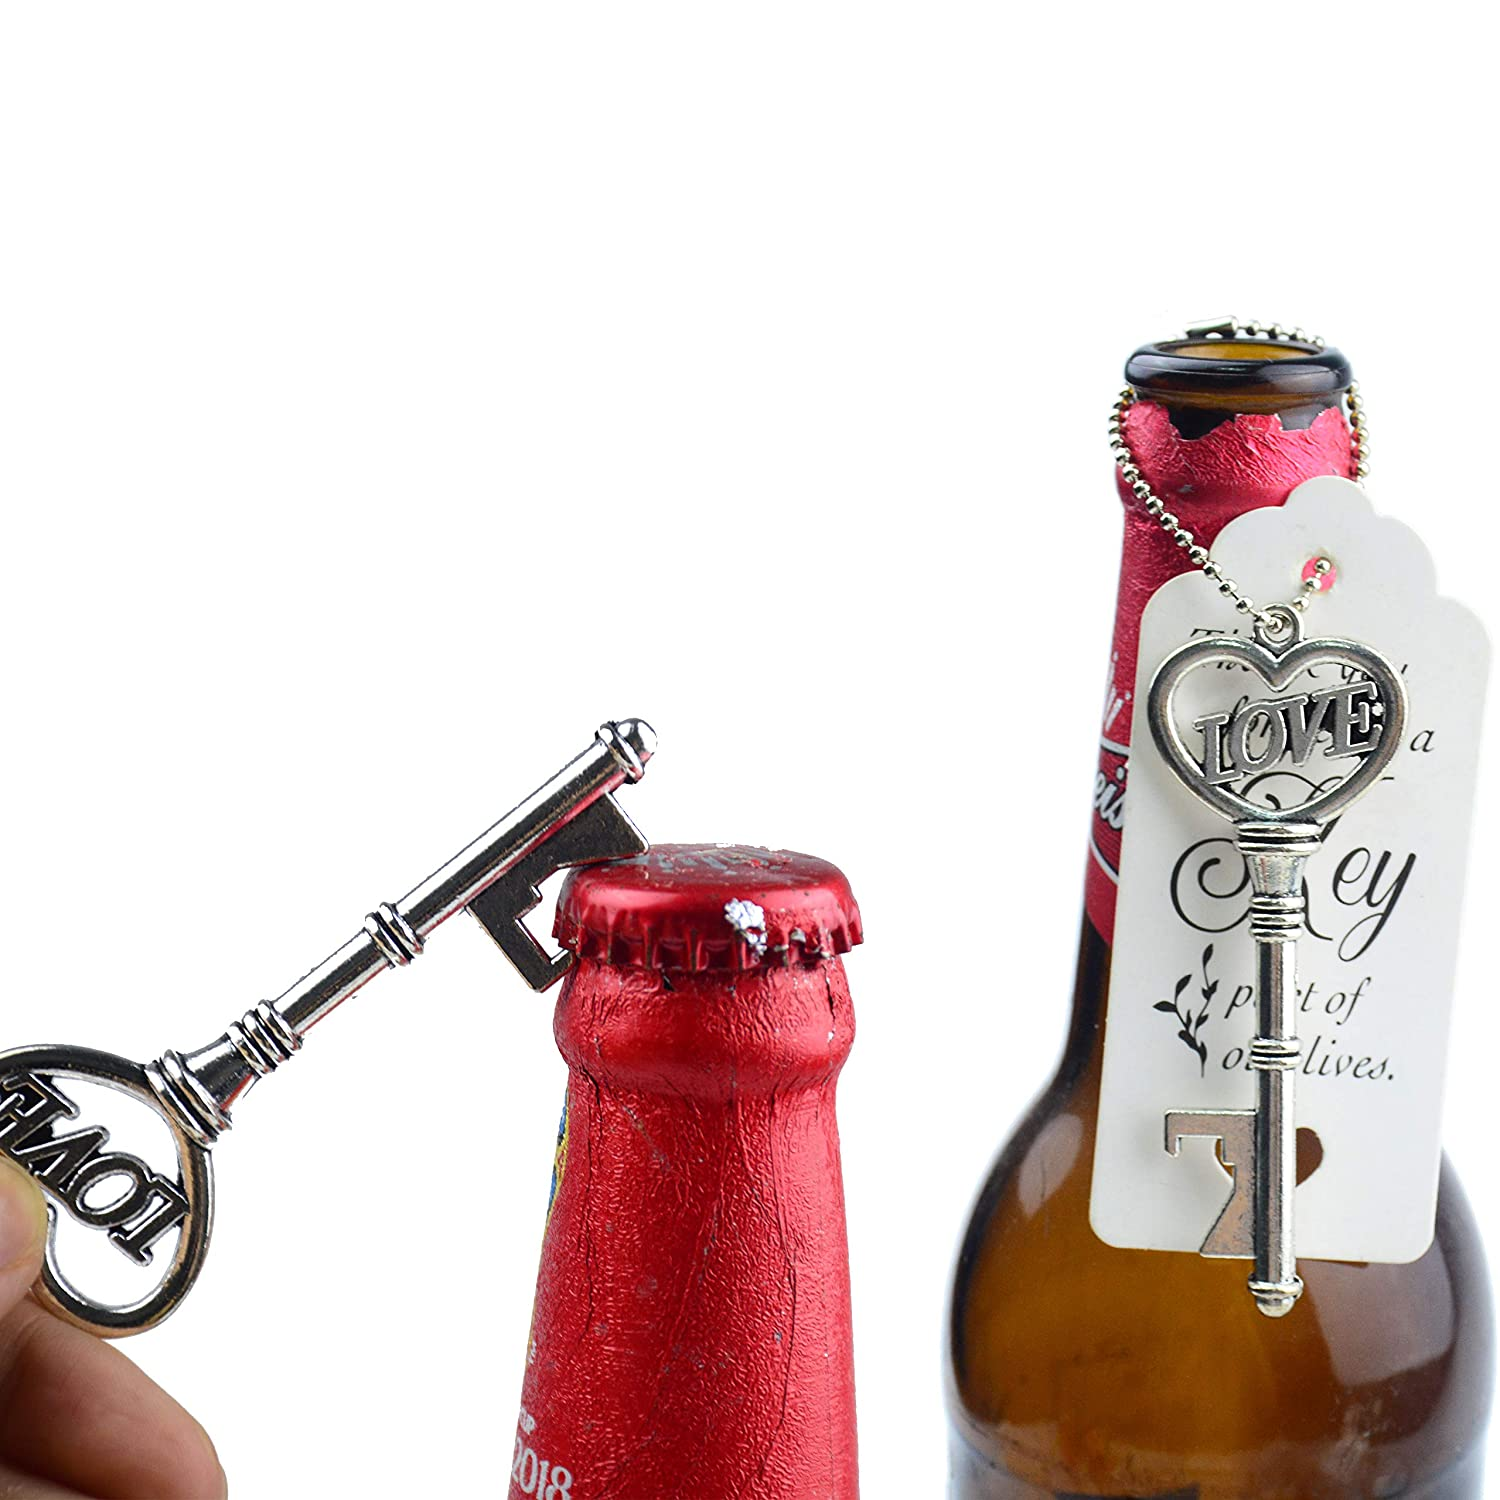 Aokbean 52pcs Antique Vintage Skeleton LOVE Key Bottle Opener Romantic Wedding Decoration Guest Souvenir Gift Set with Escort Thank You Tag Card and Keychain